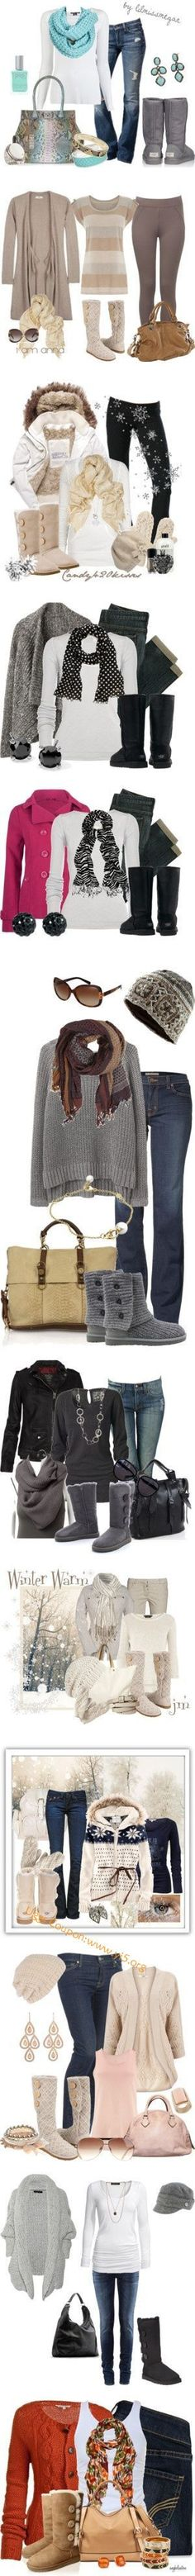 #high_fashion #fall_outfit #womens_fashion